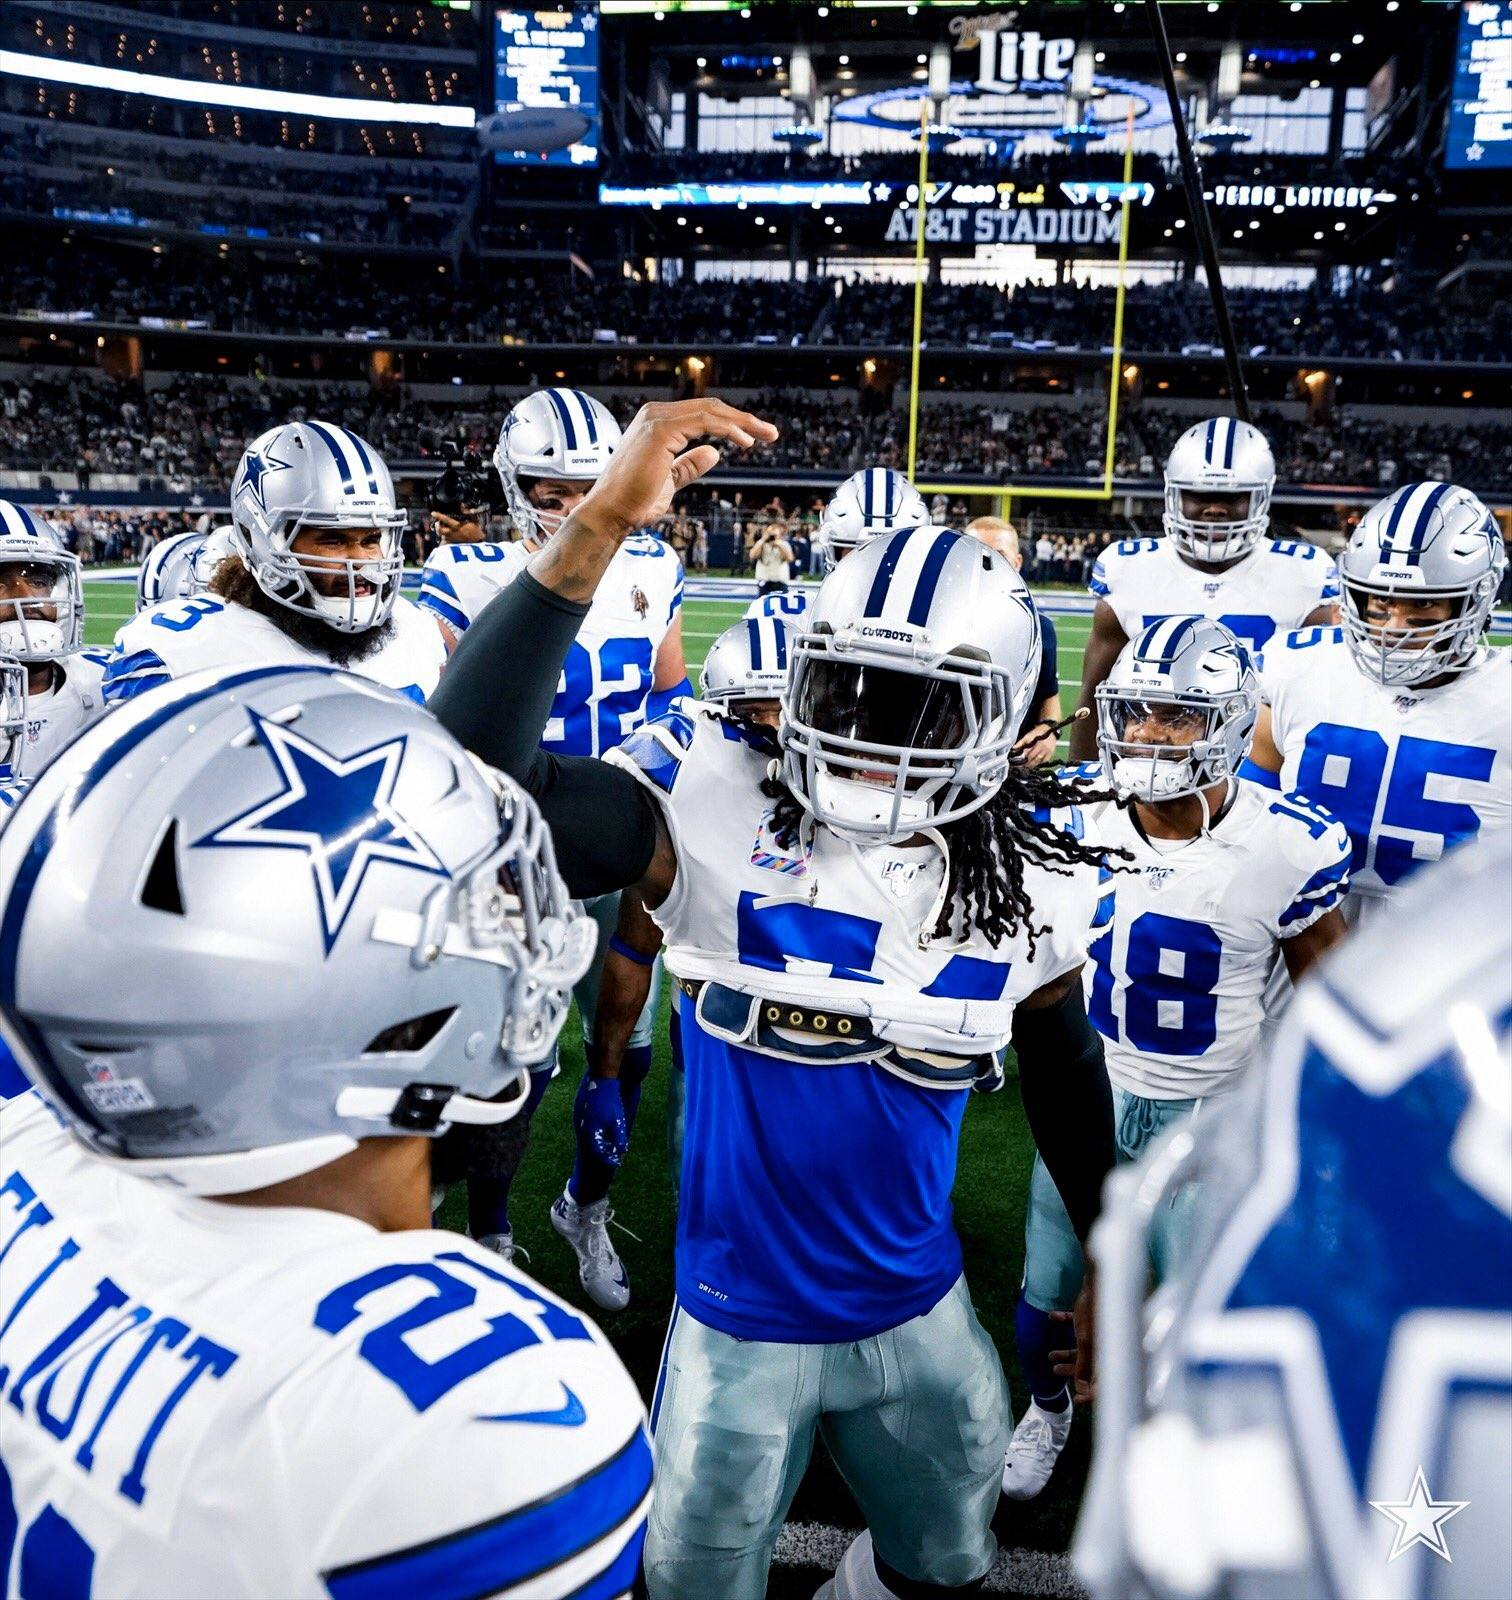 Cowboys Look to Continue NFC East Dominance, Seeking 8th Consecutive Division Win